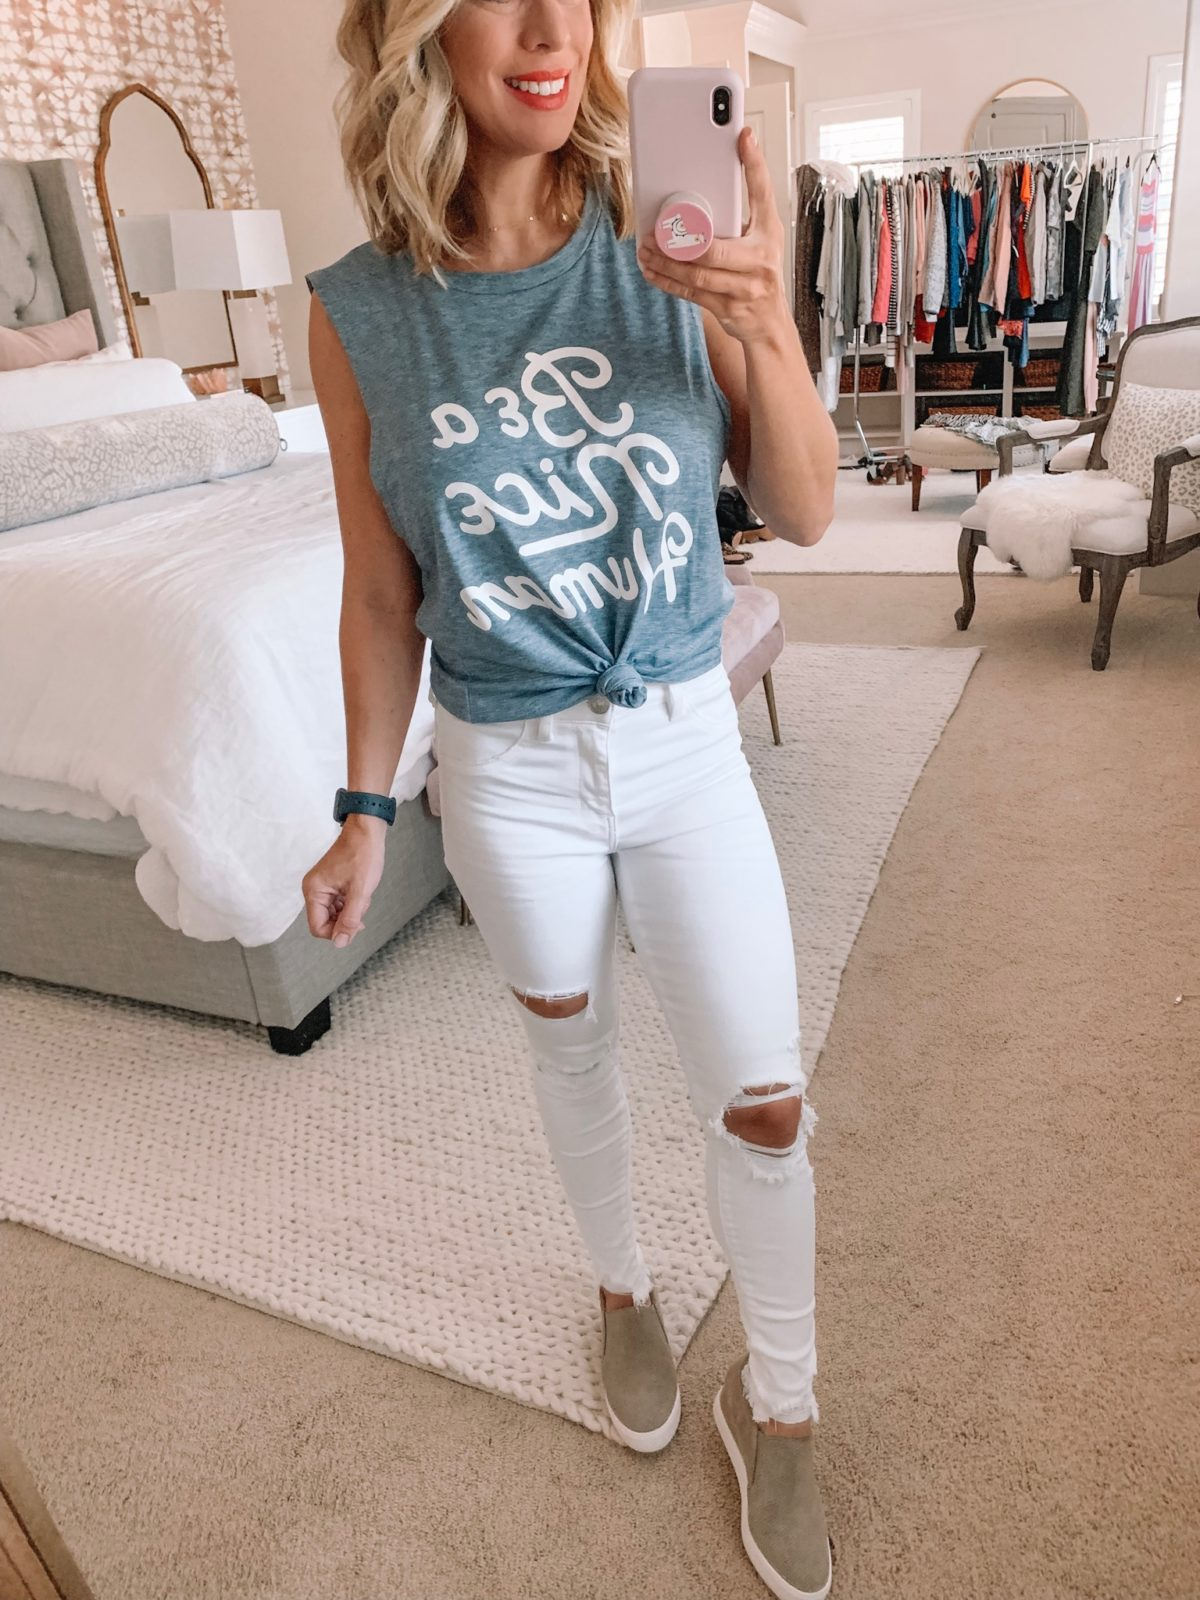 Dressing Room - Be a Nice Human tank and white jeans